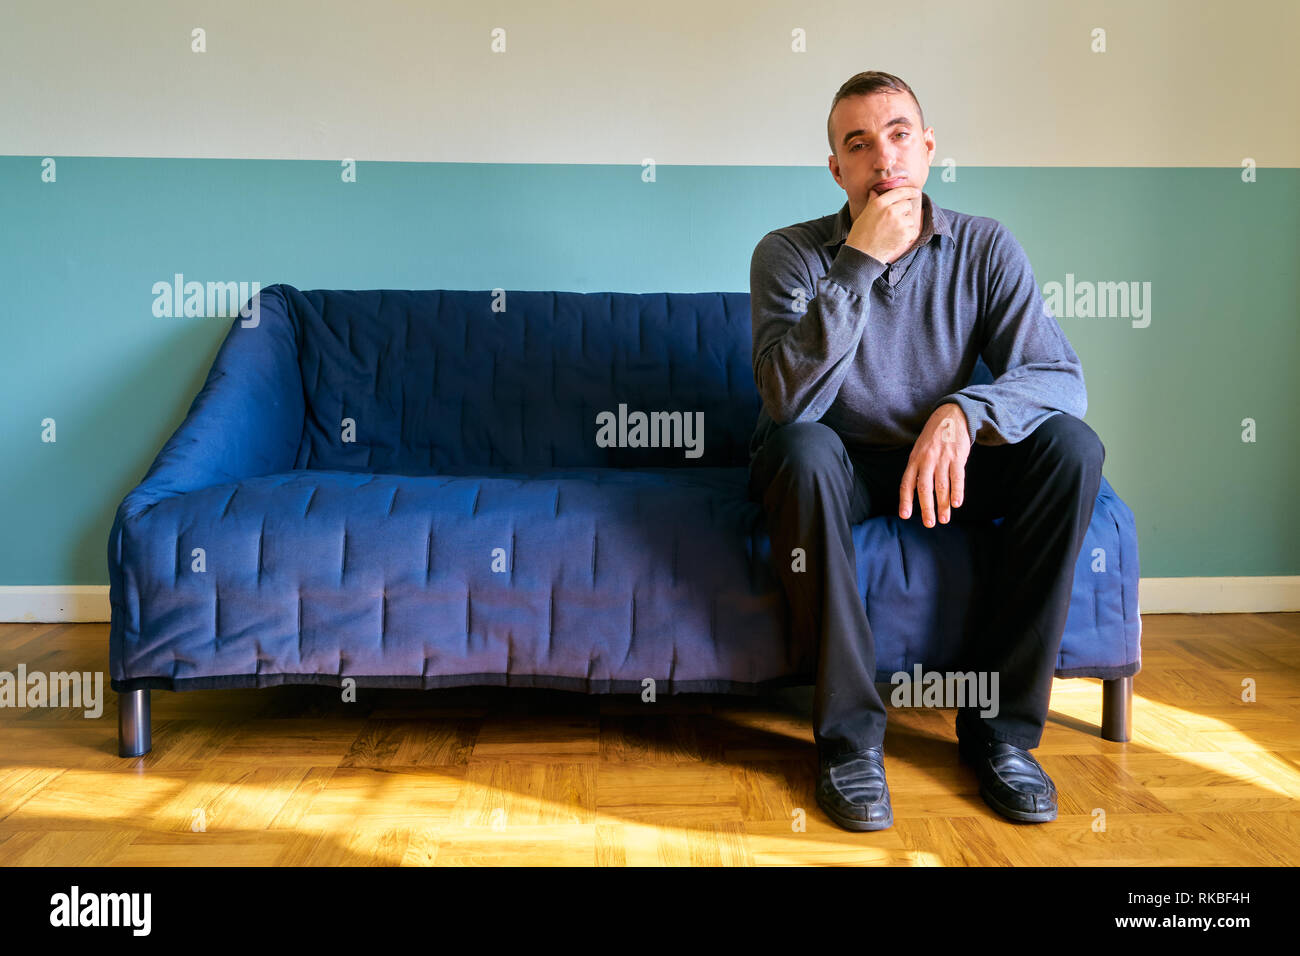 Handsome guy posing - serious expression and thinking about something sitting on the sofa - Stock Image